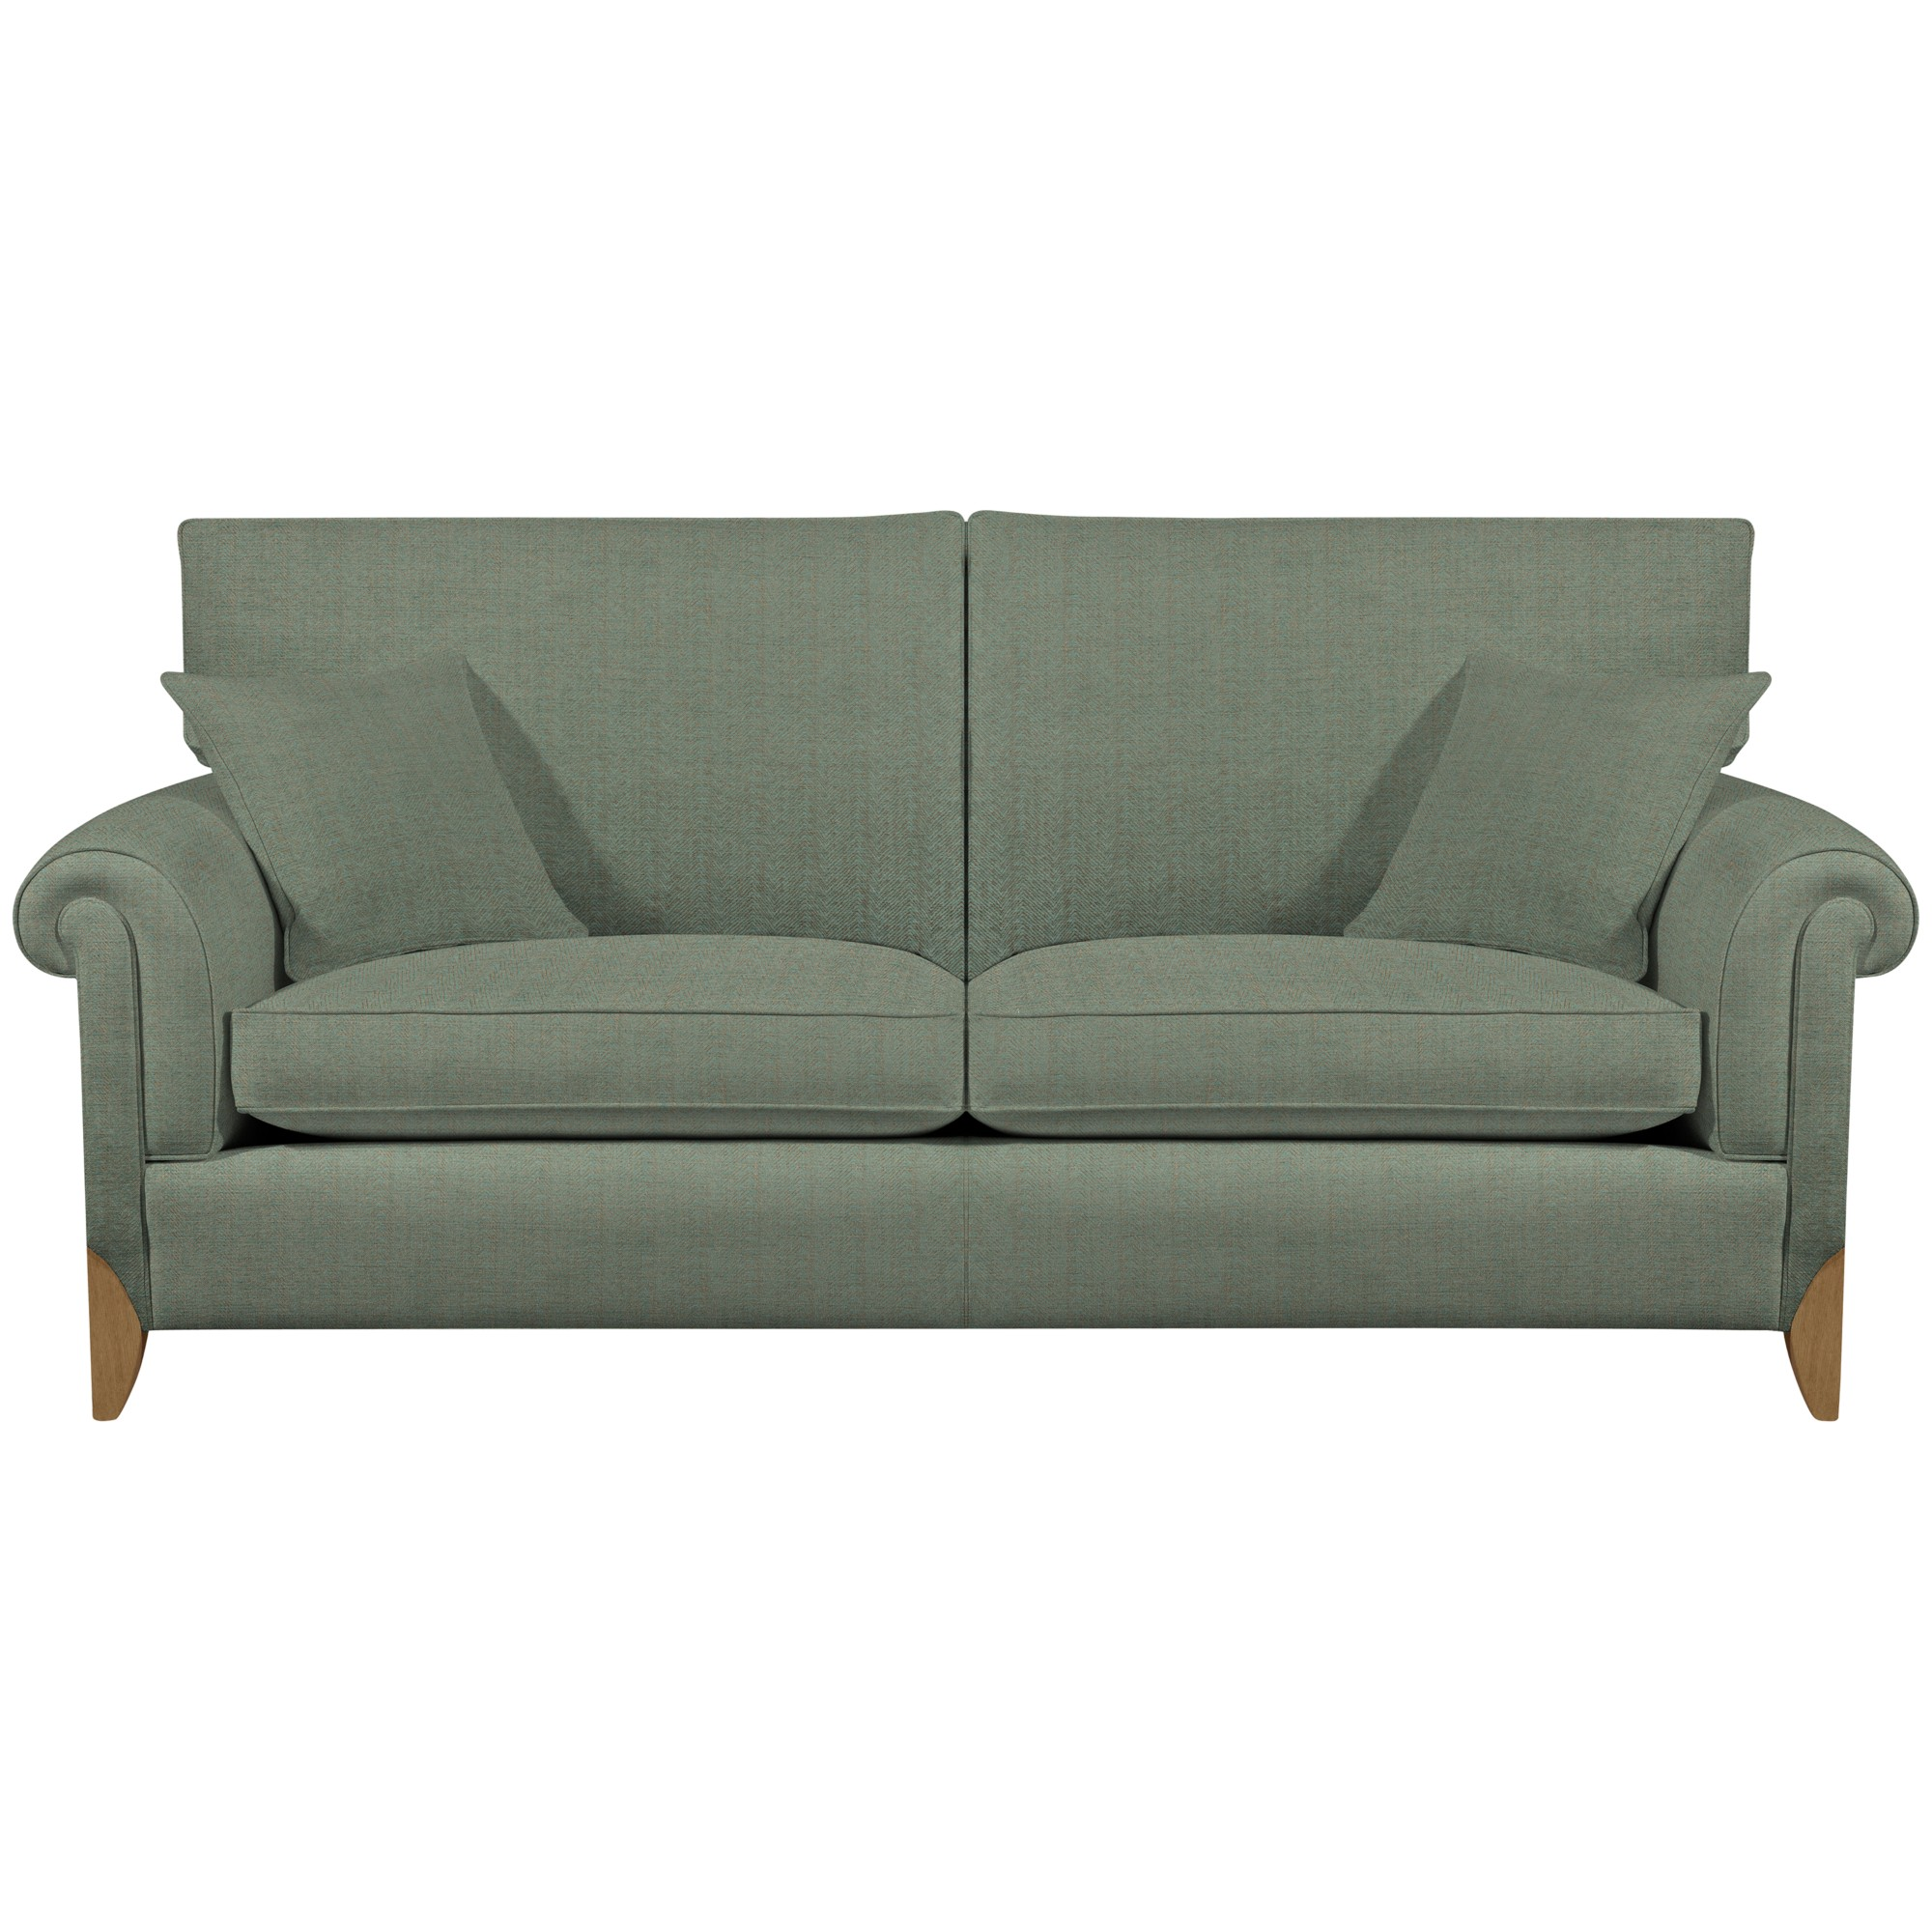 best buy sofa cover for leather duresta cavendish large 2 scatter cushions by john